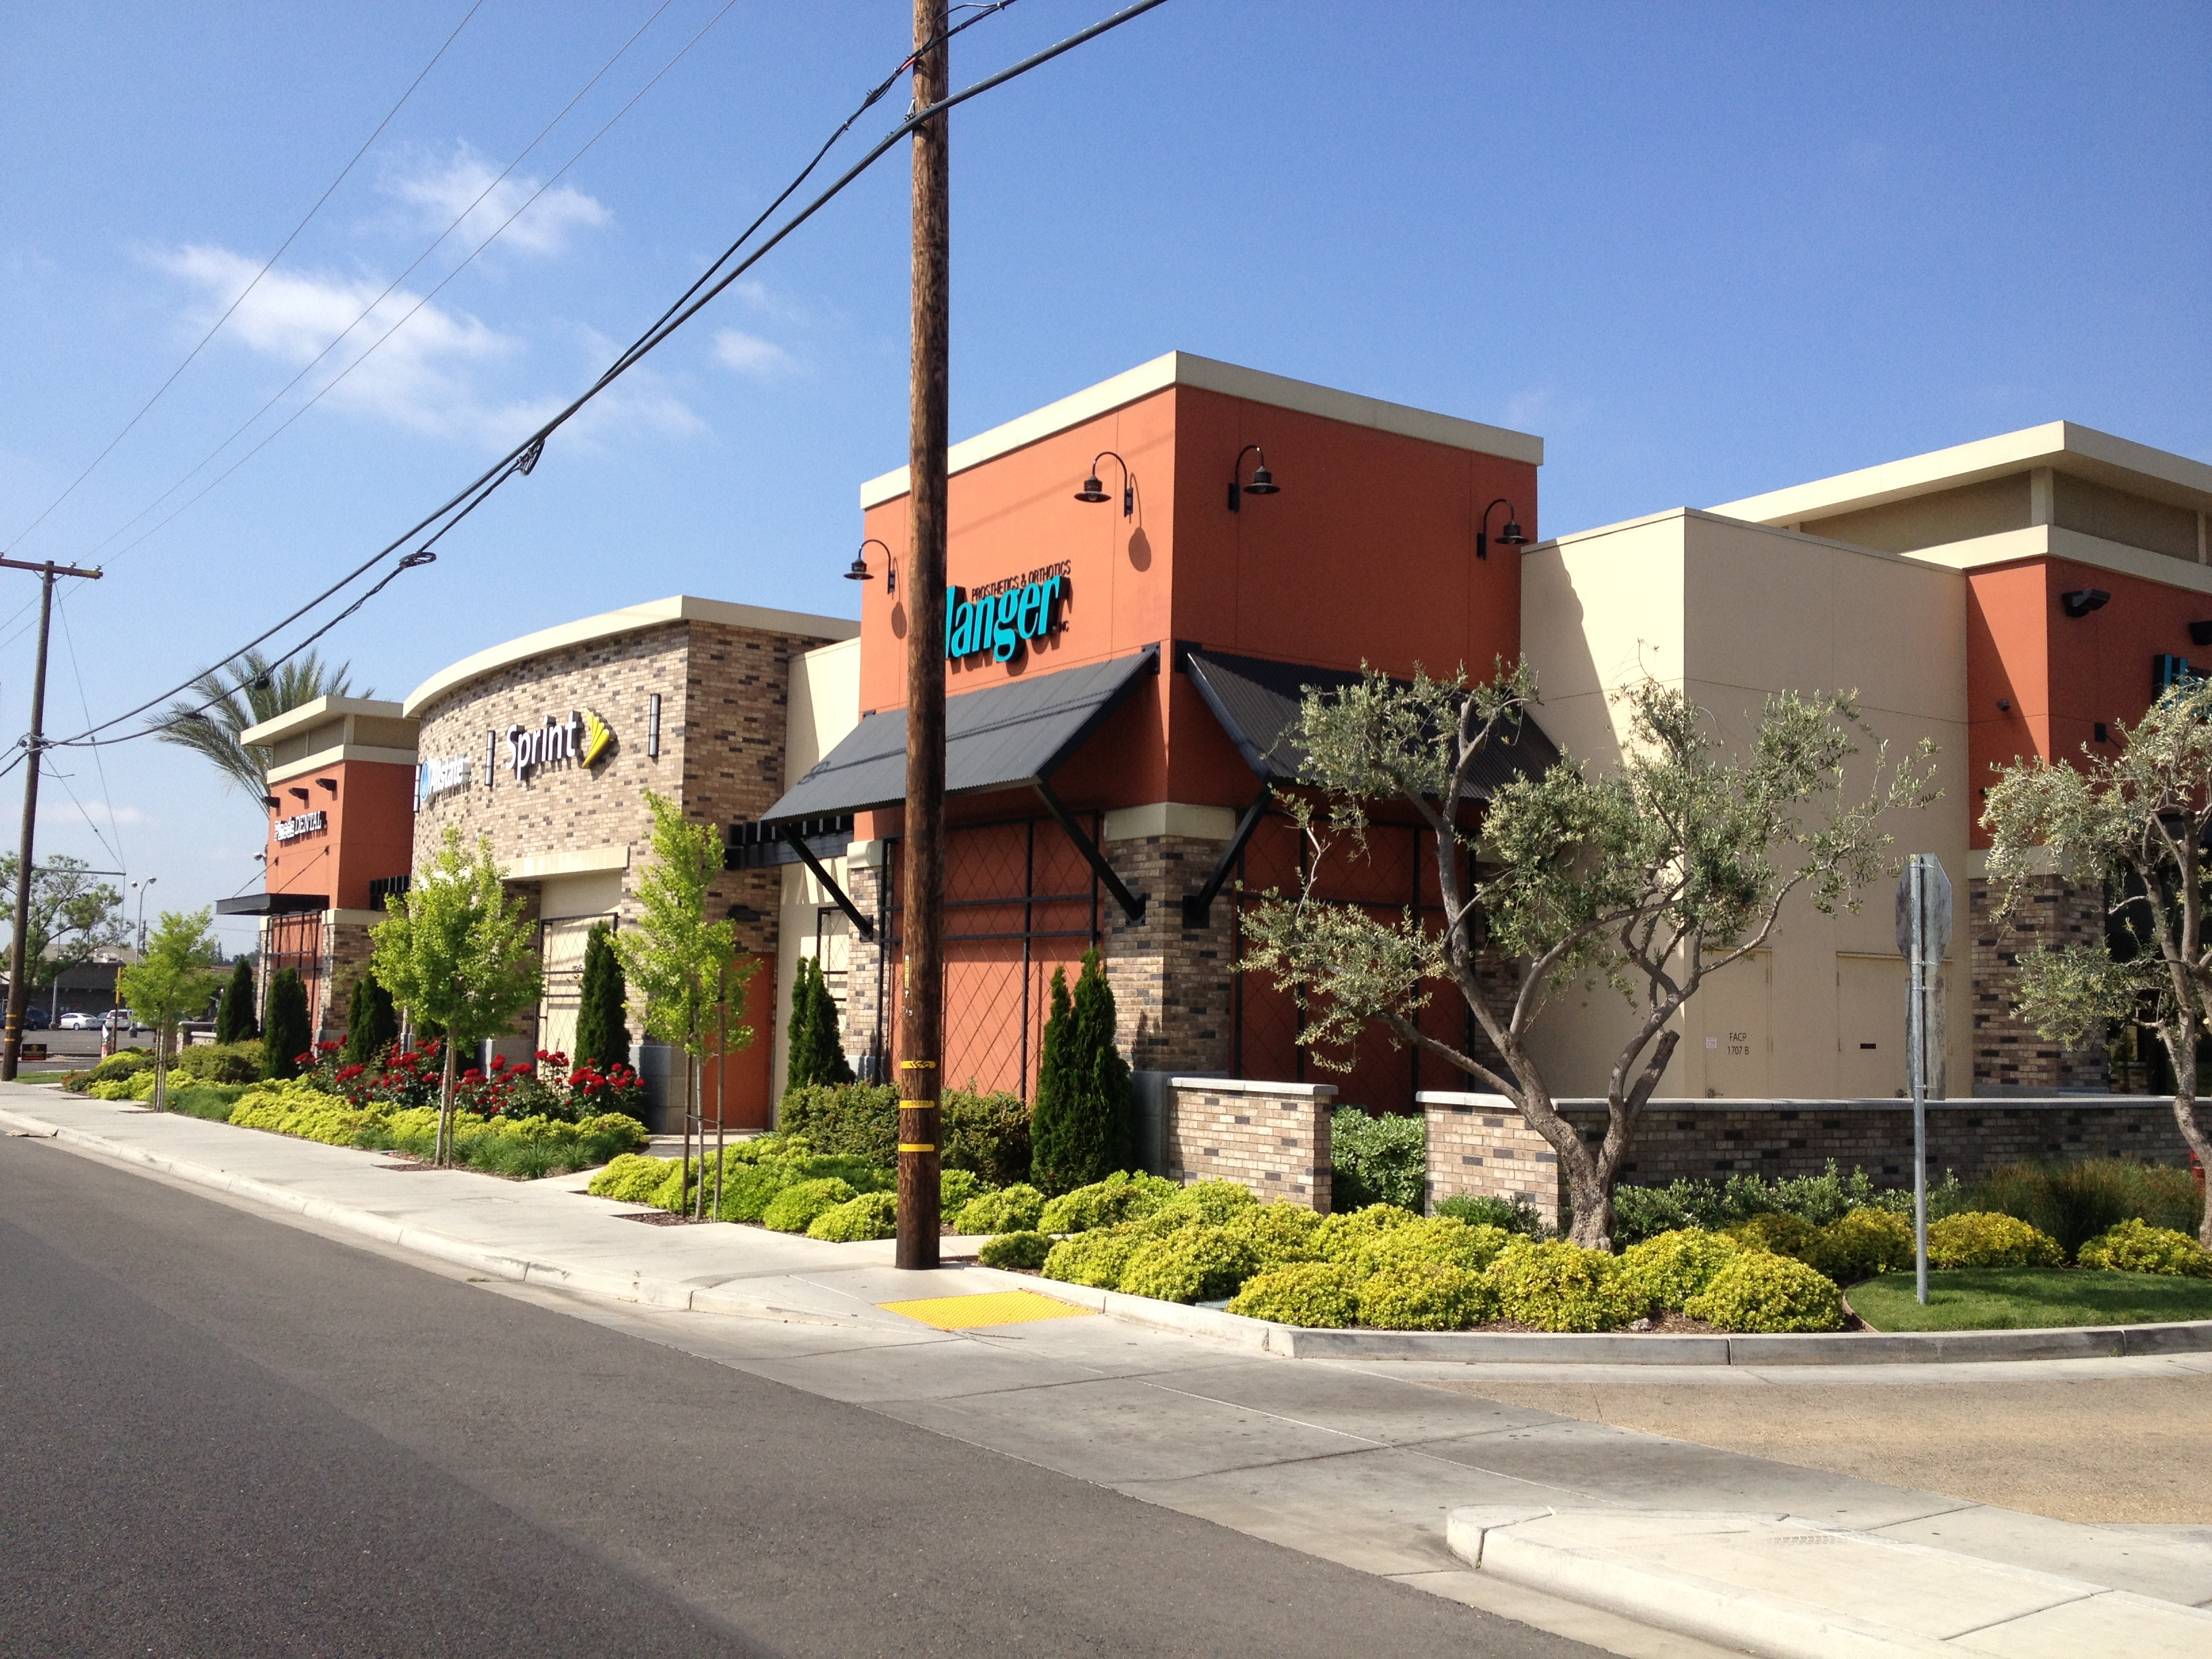 Village West Retail Center